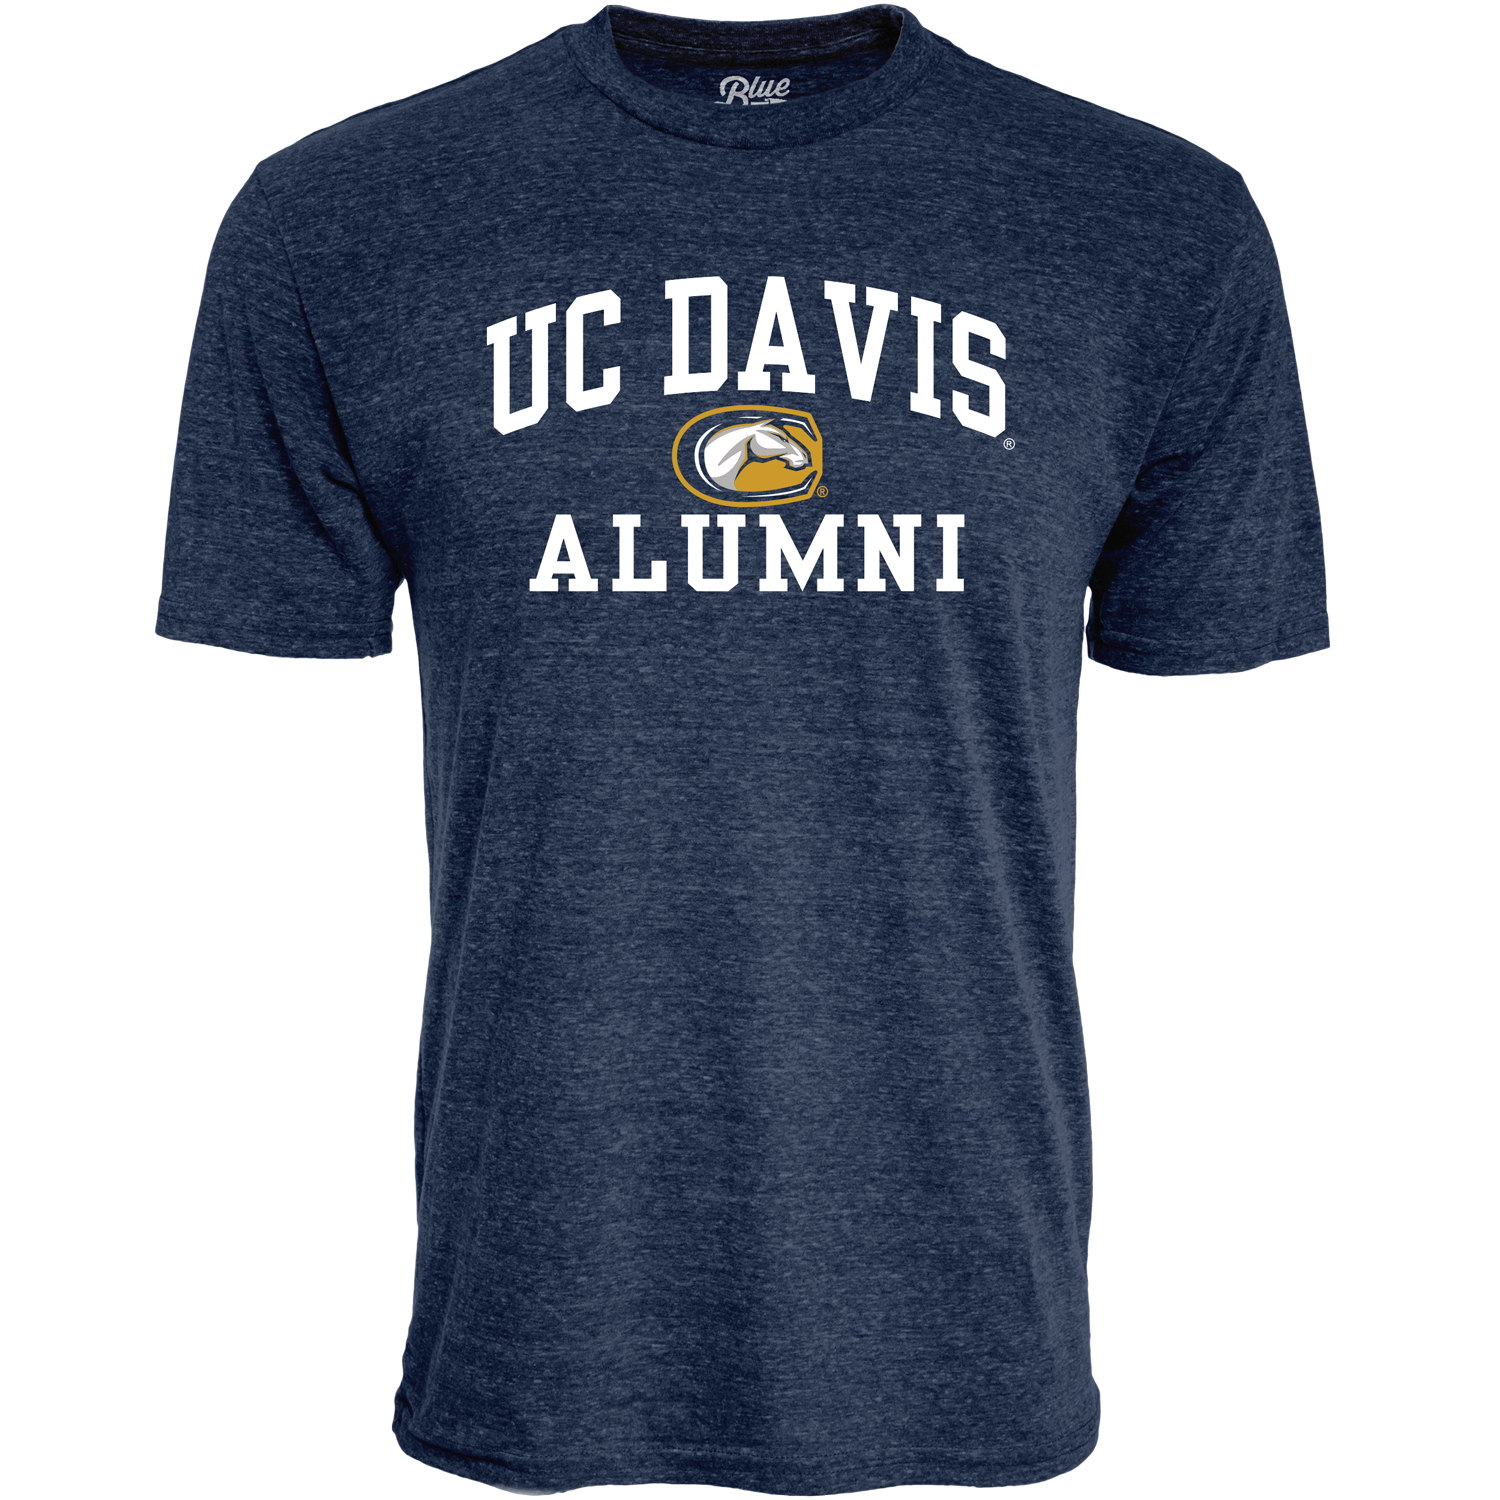 Blue 84 Men's UC Davis Mascot Alumni T-Shirt Navy